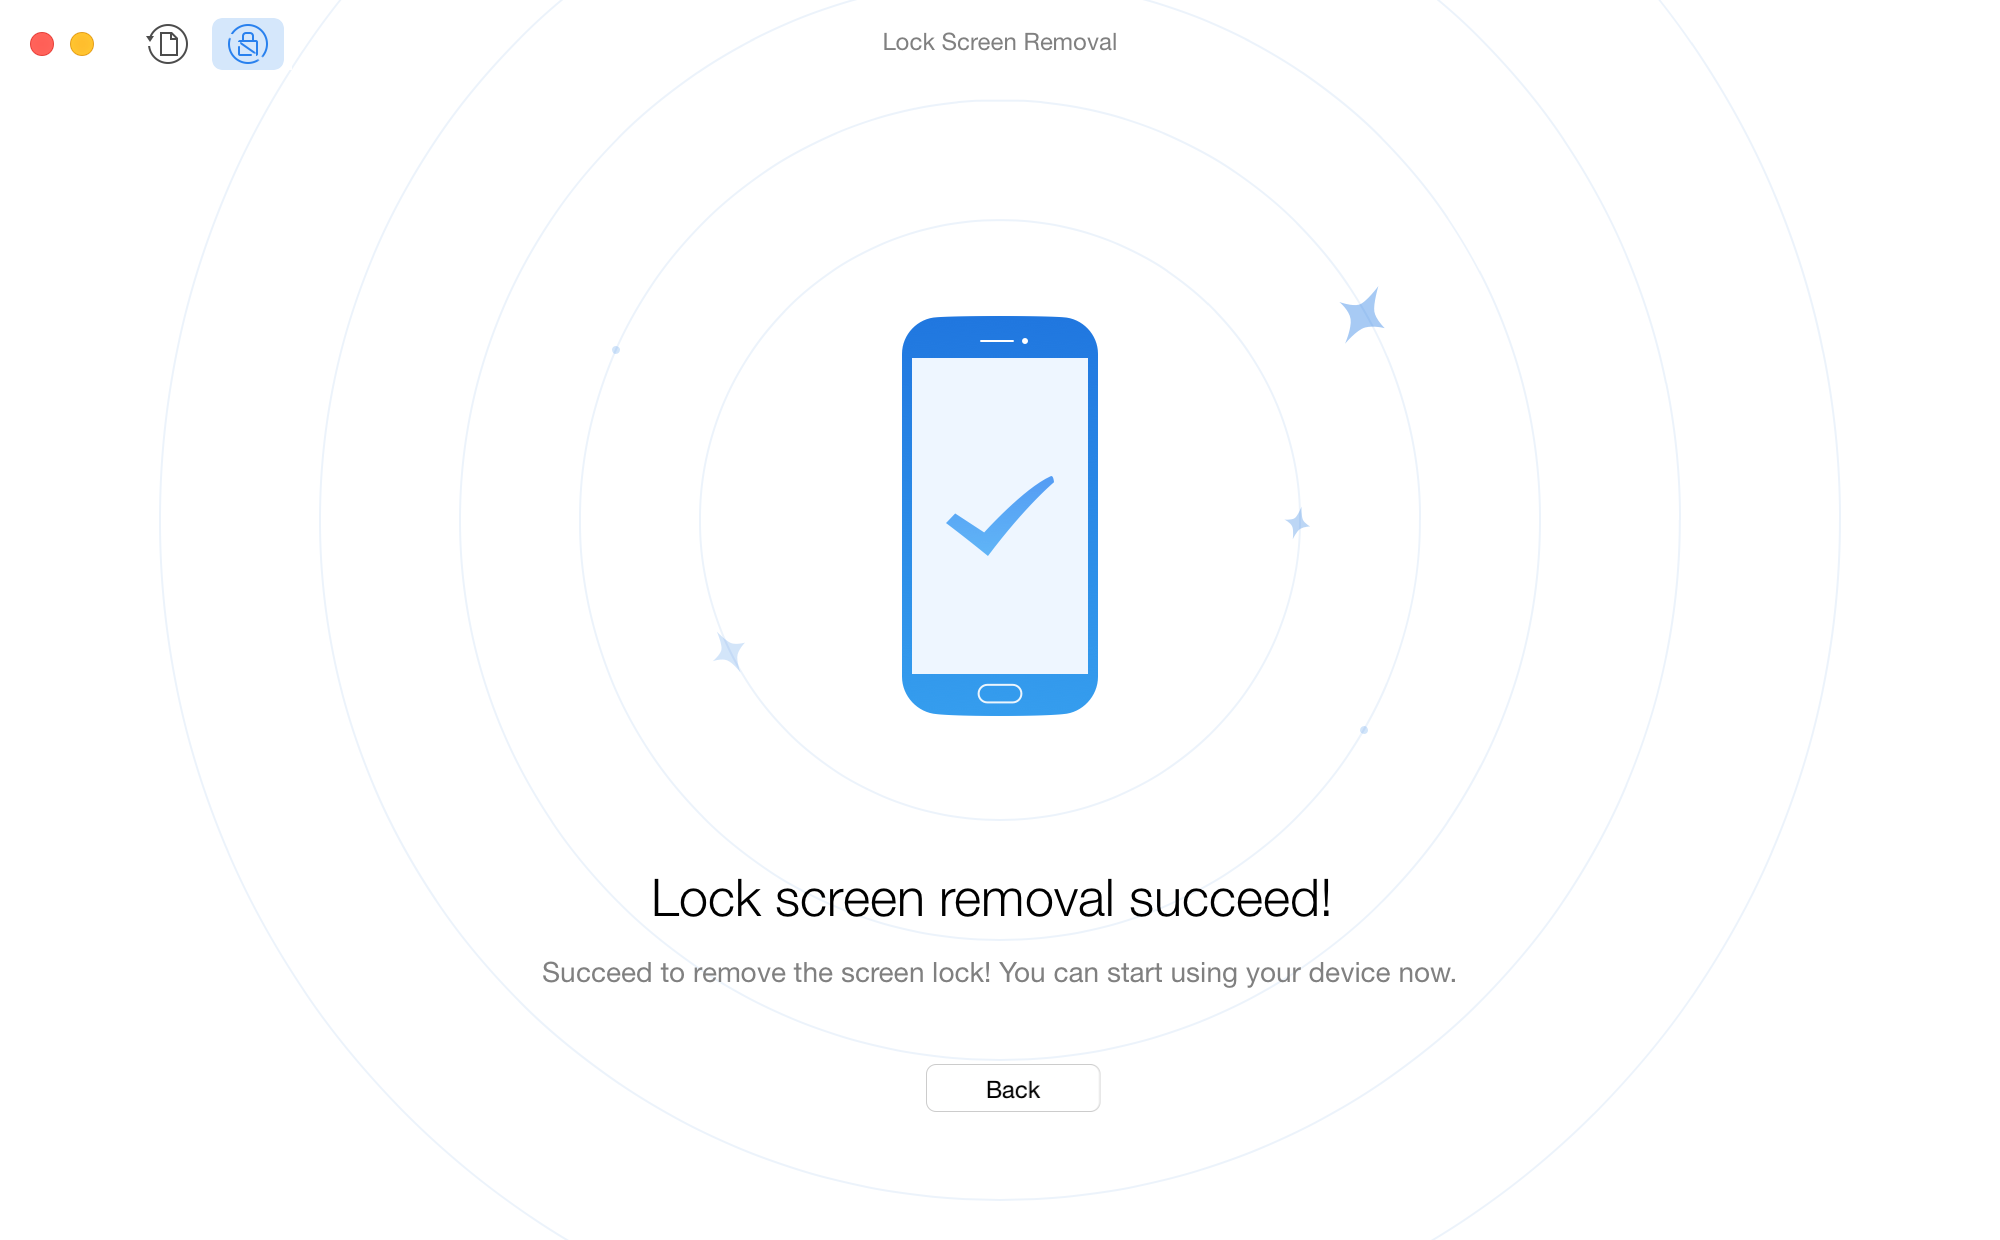 Screen Lock Removal Complete